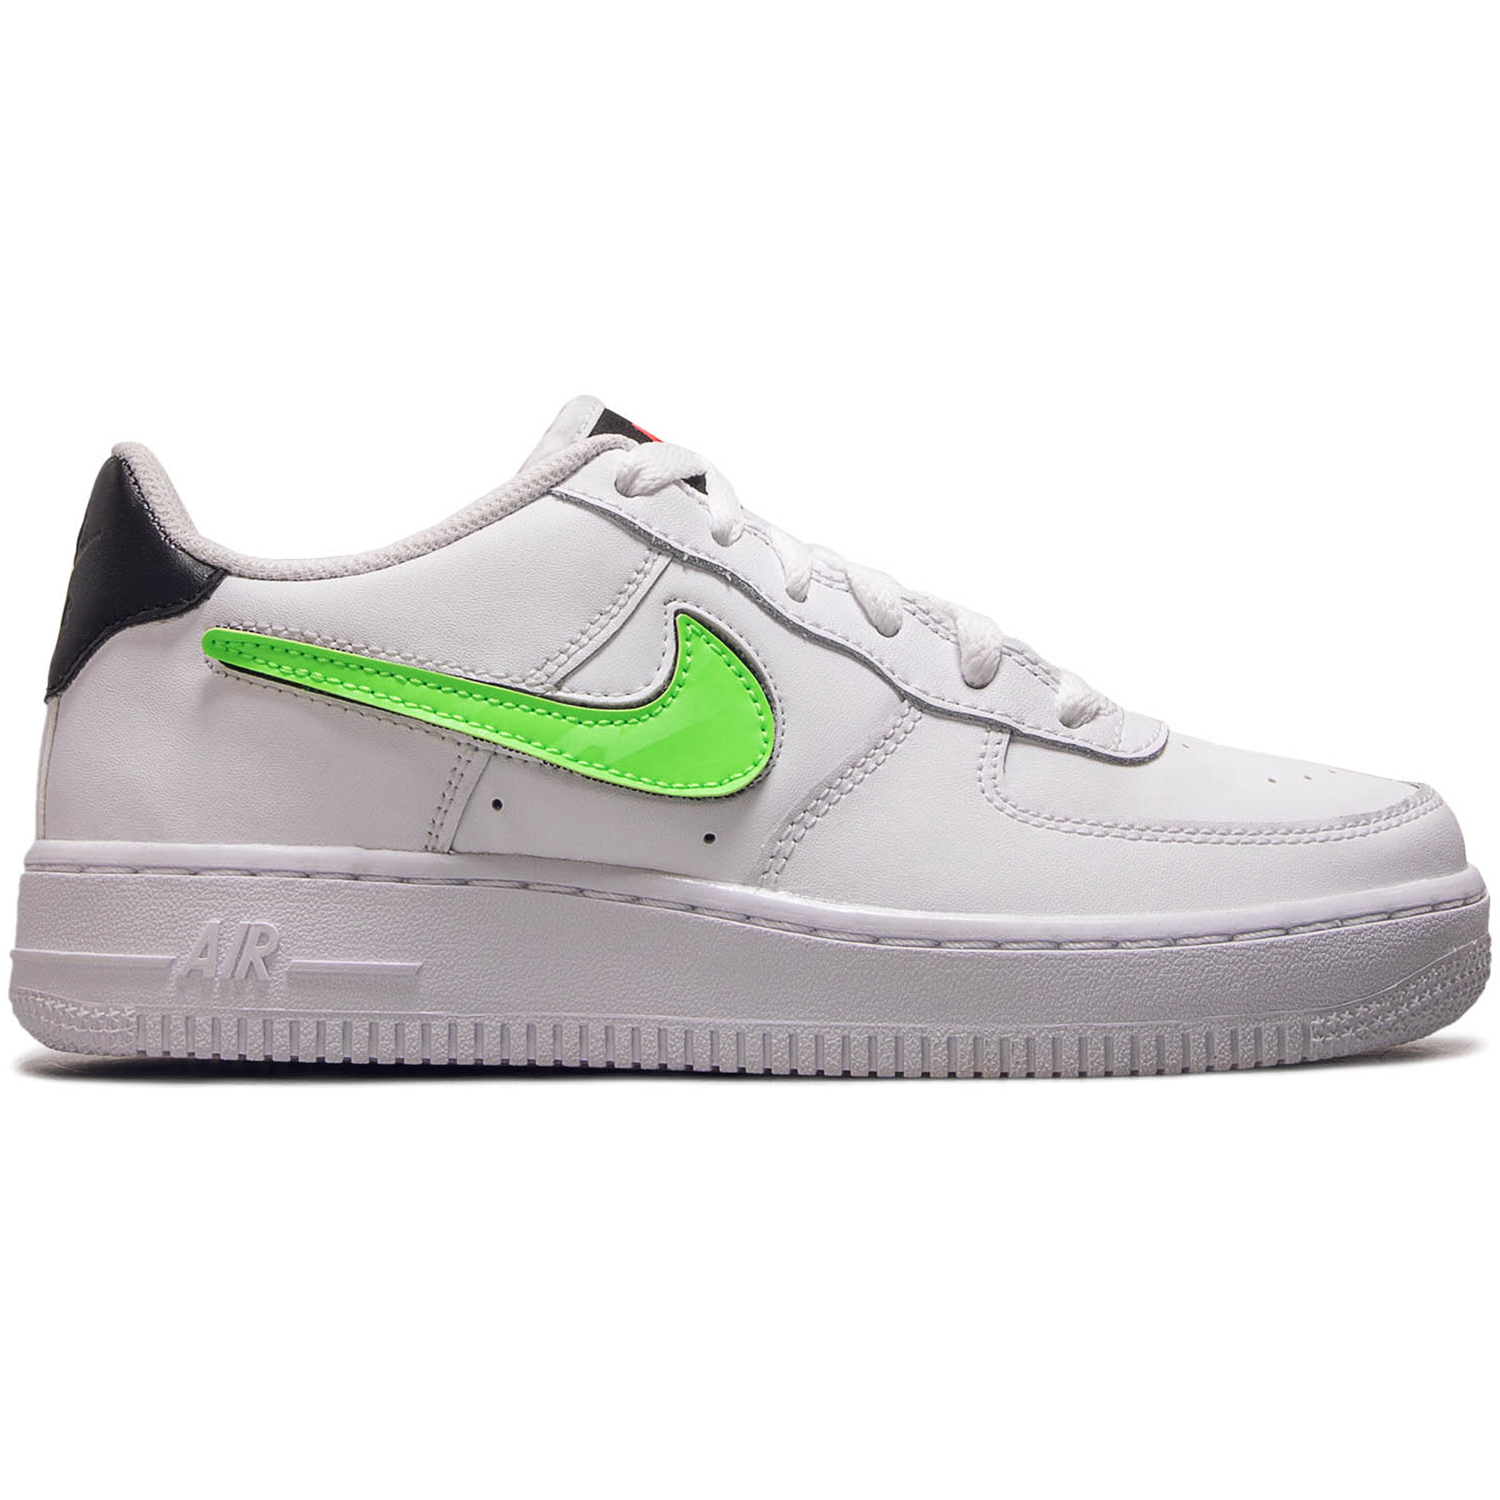 competitive price 0e567 b927e Nike Air Force 1 LV8 3 GS Sneaker weiß grün schwarz AR7446 100